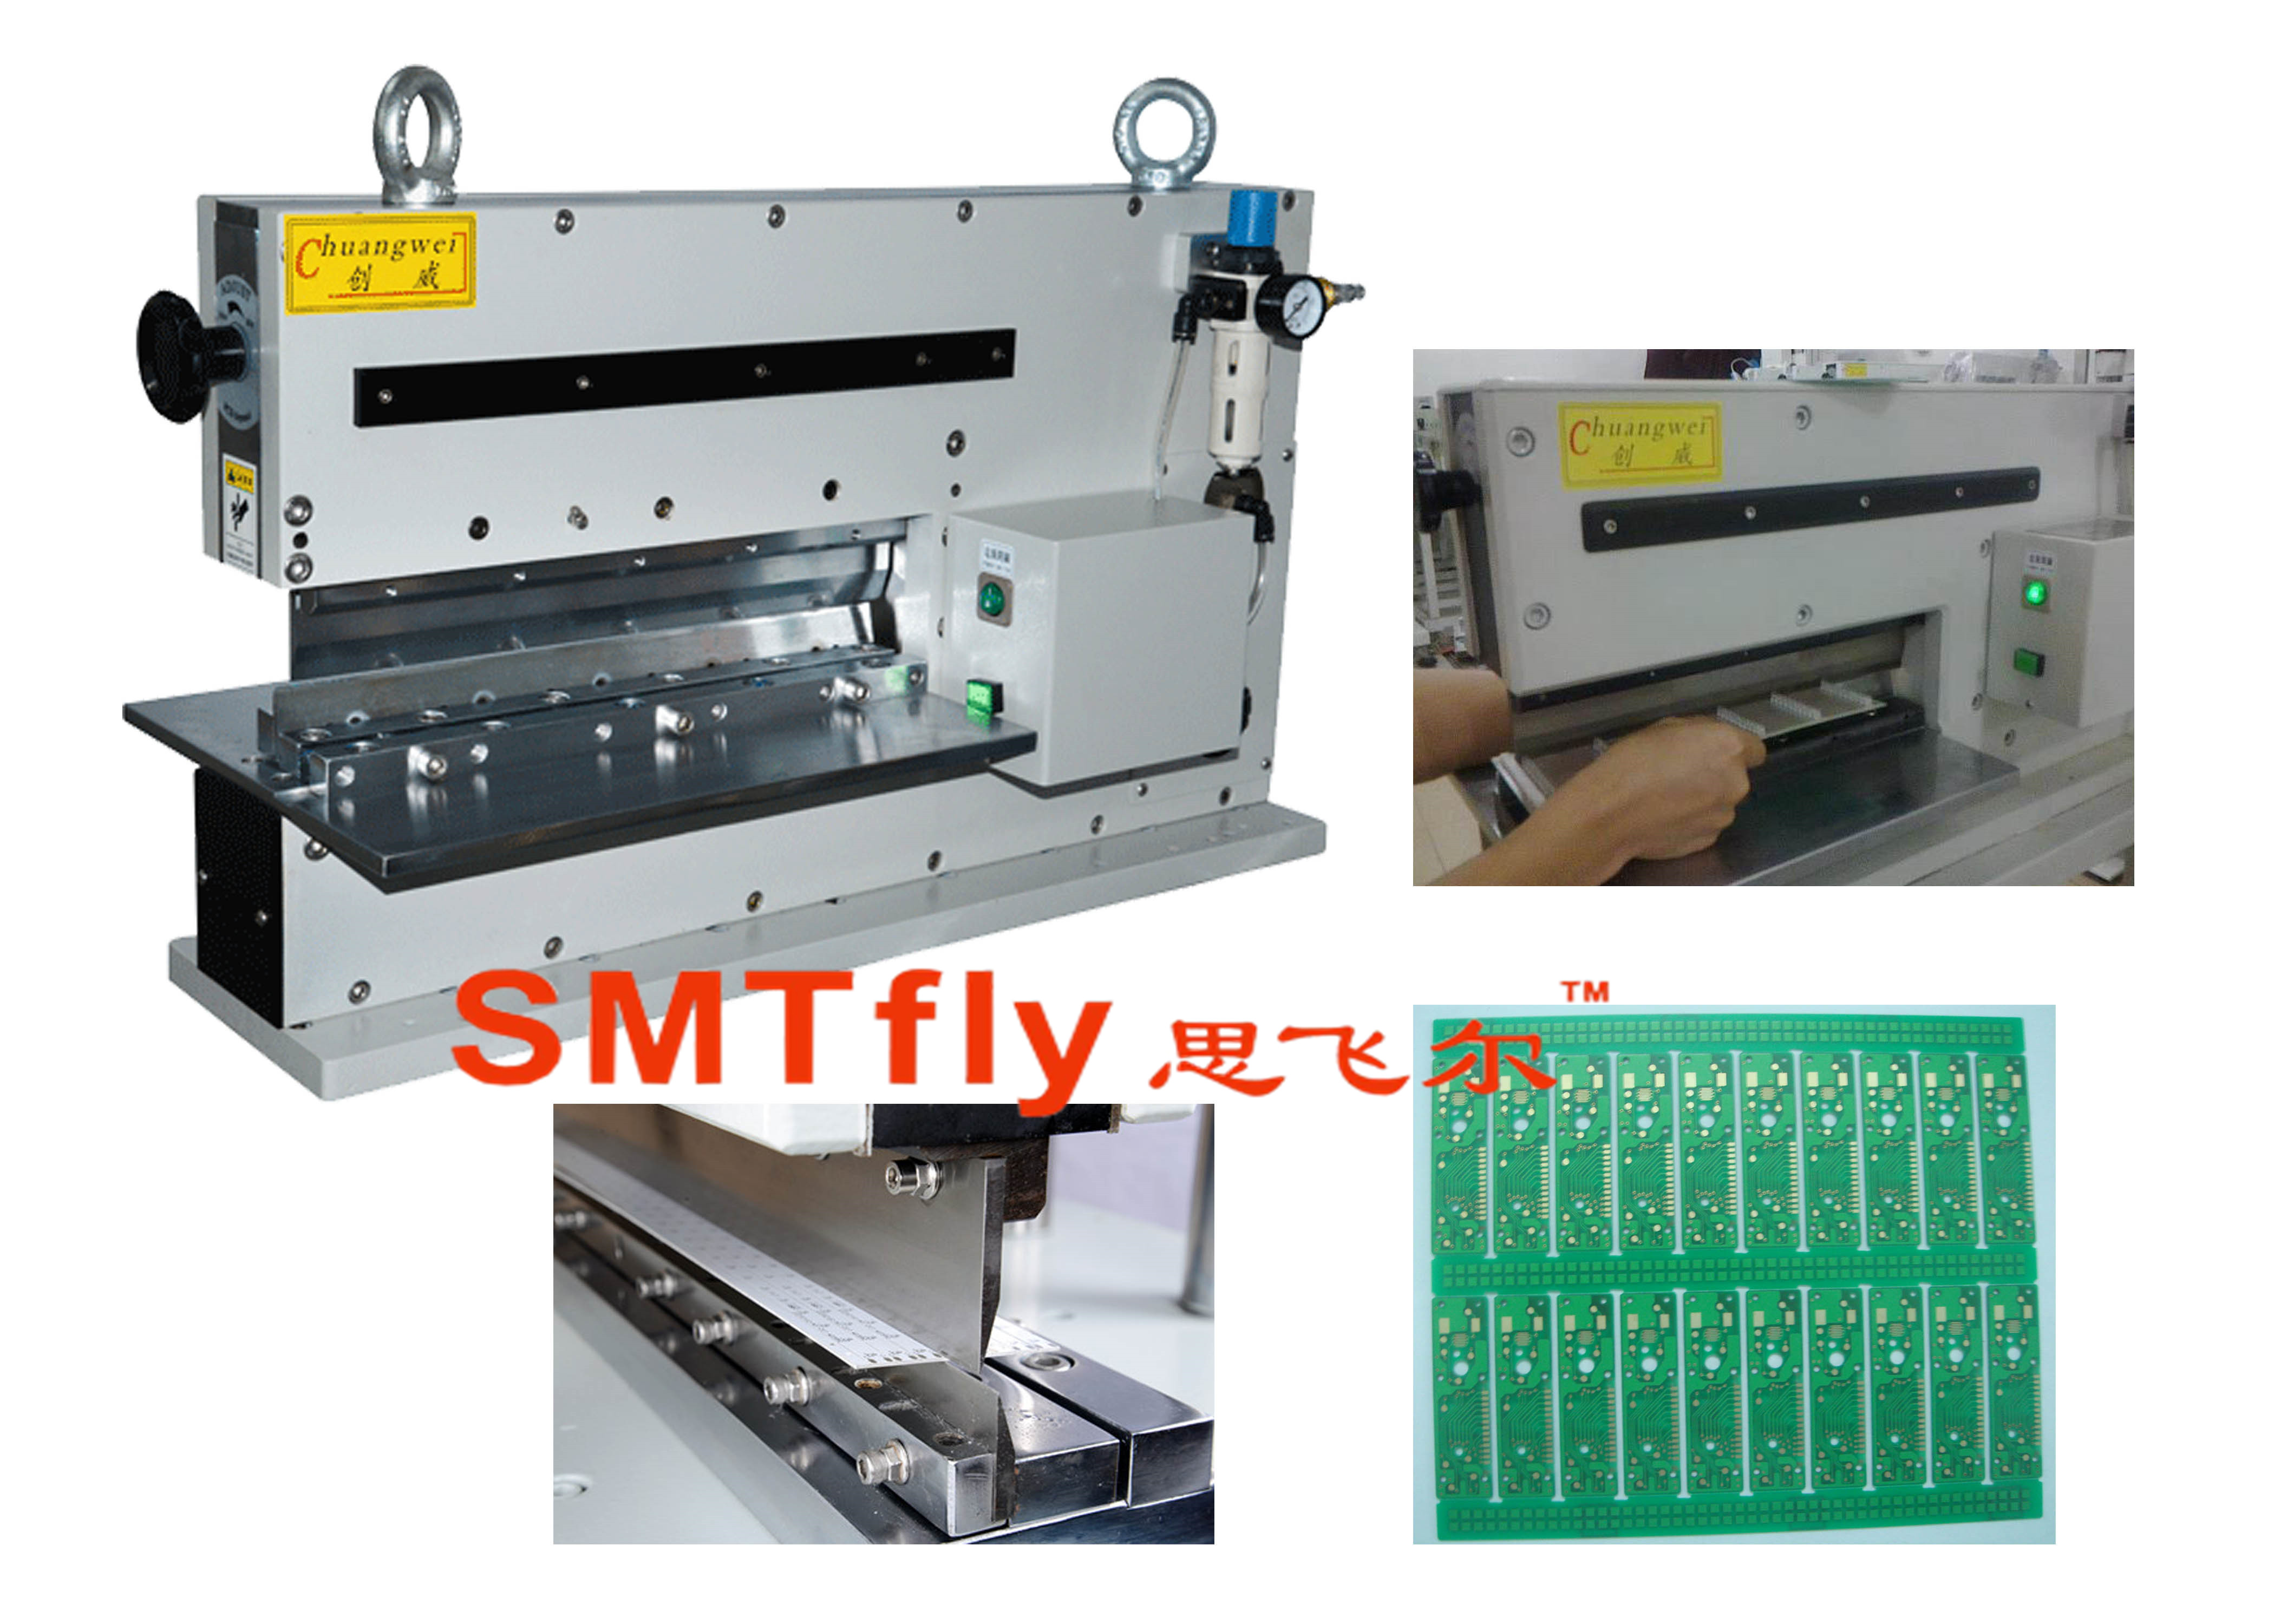 Multilayer PCB Cutting Tool,SMTfly-400J